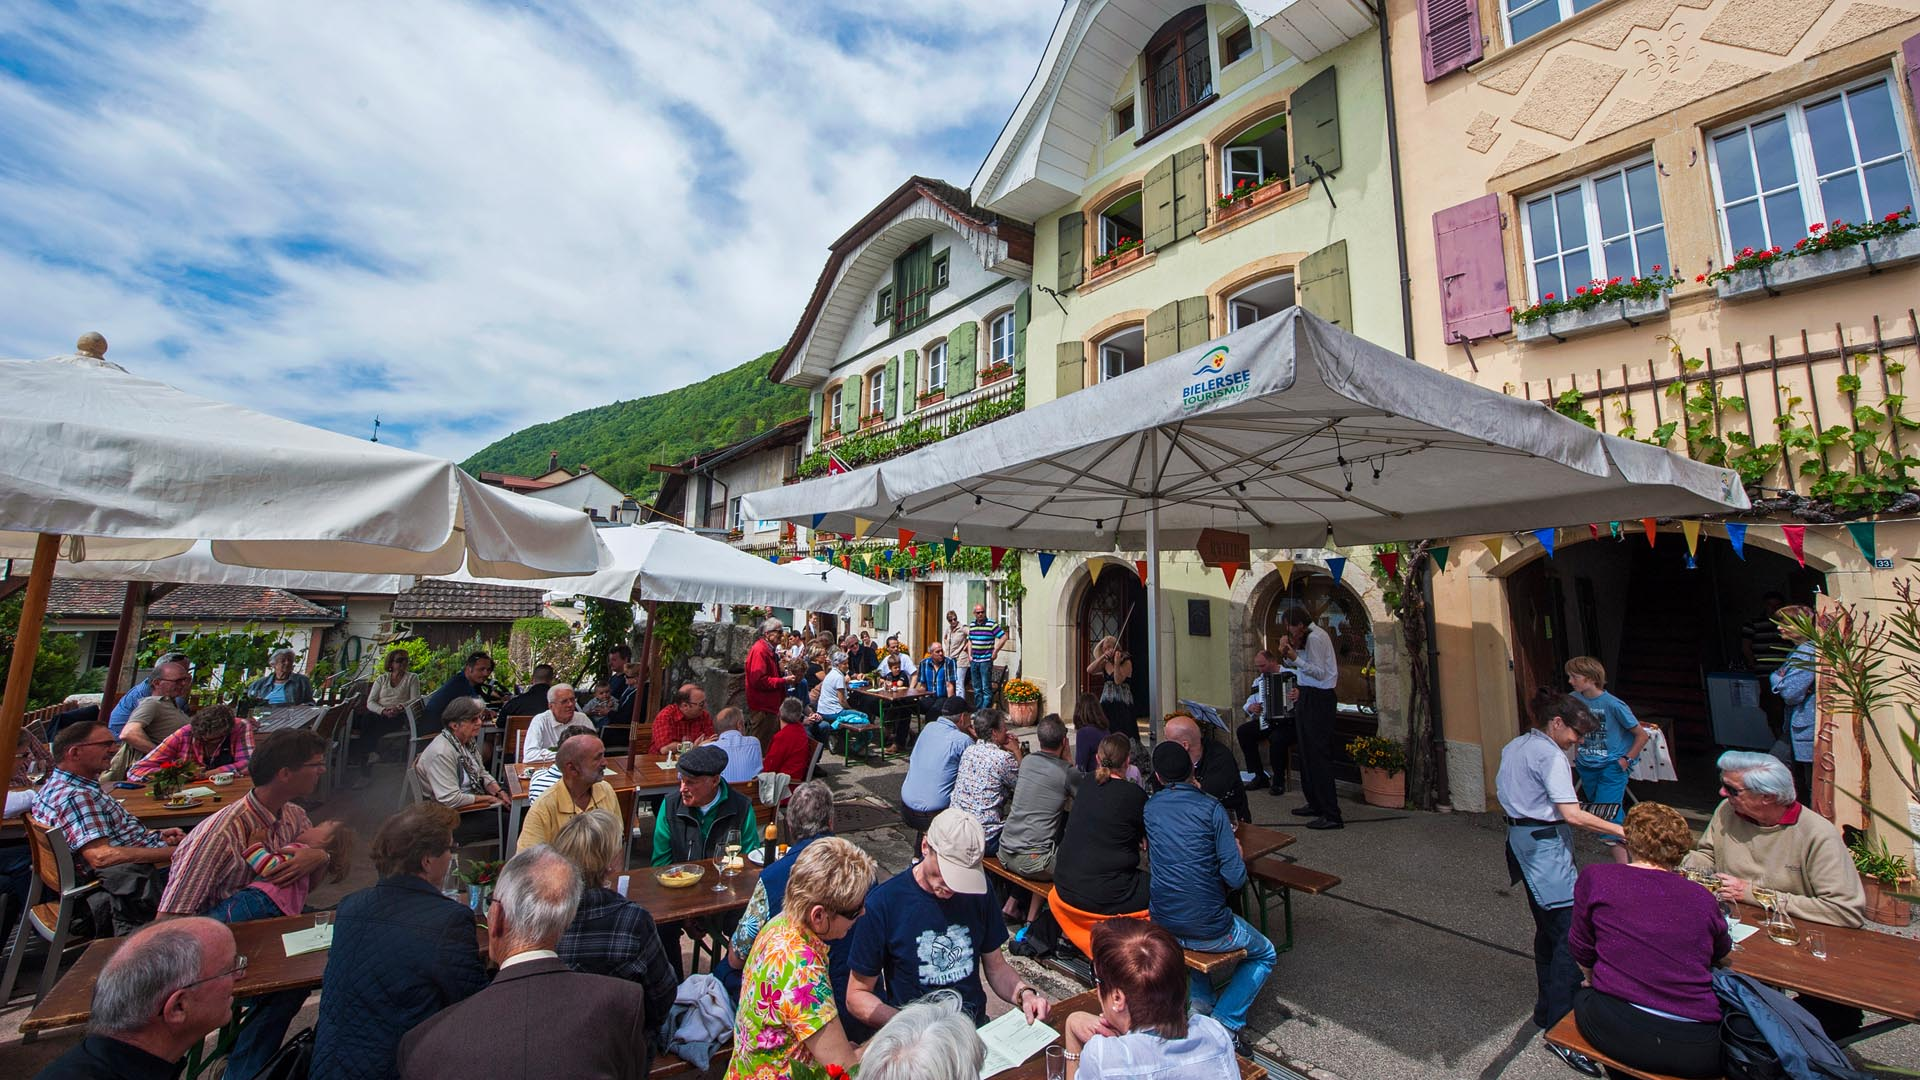 Weinfest am Bielersee in Schafis- Wyprob